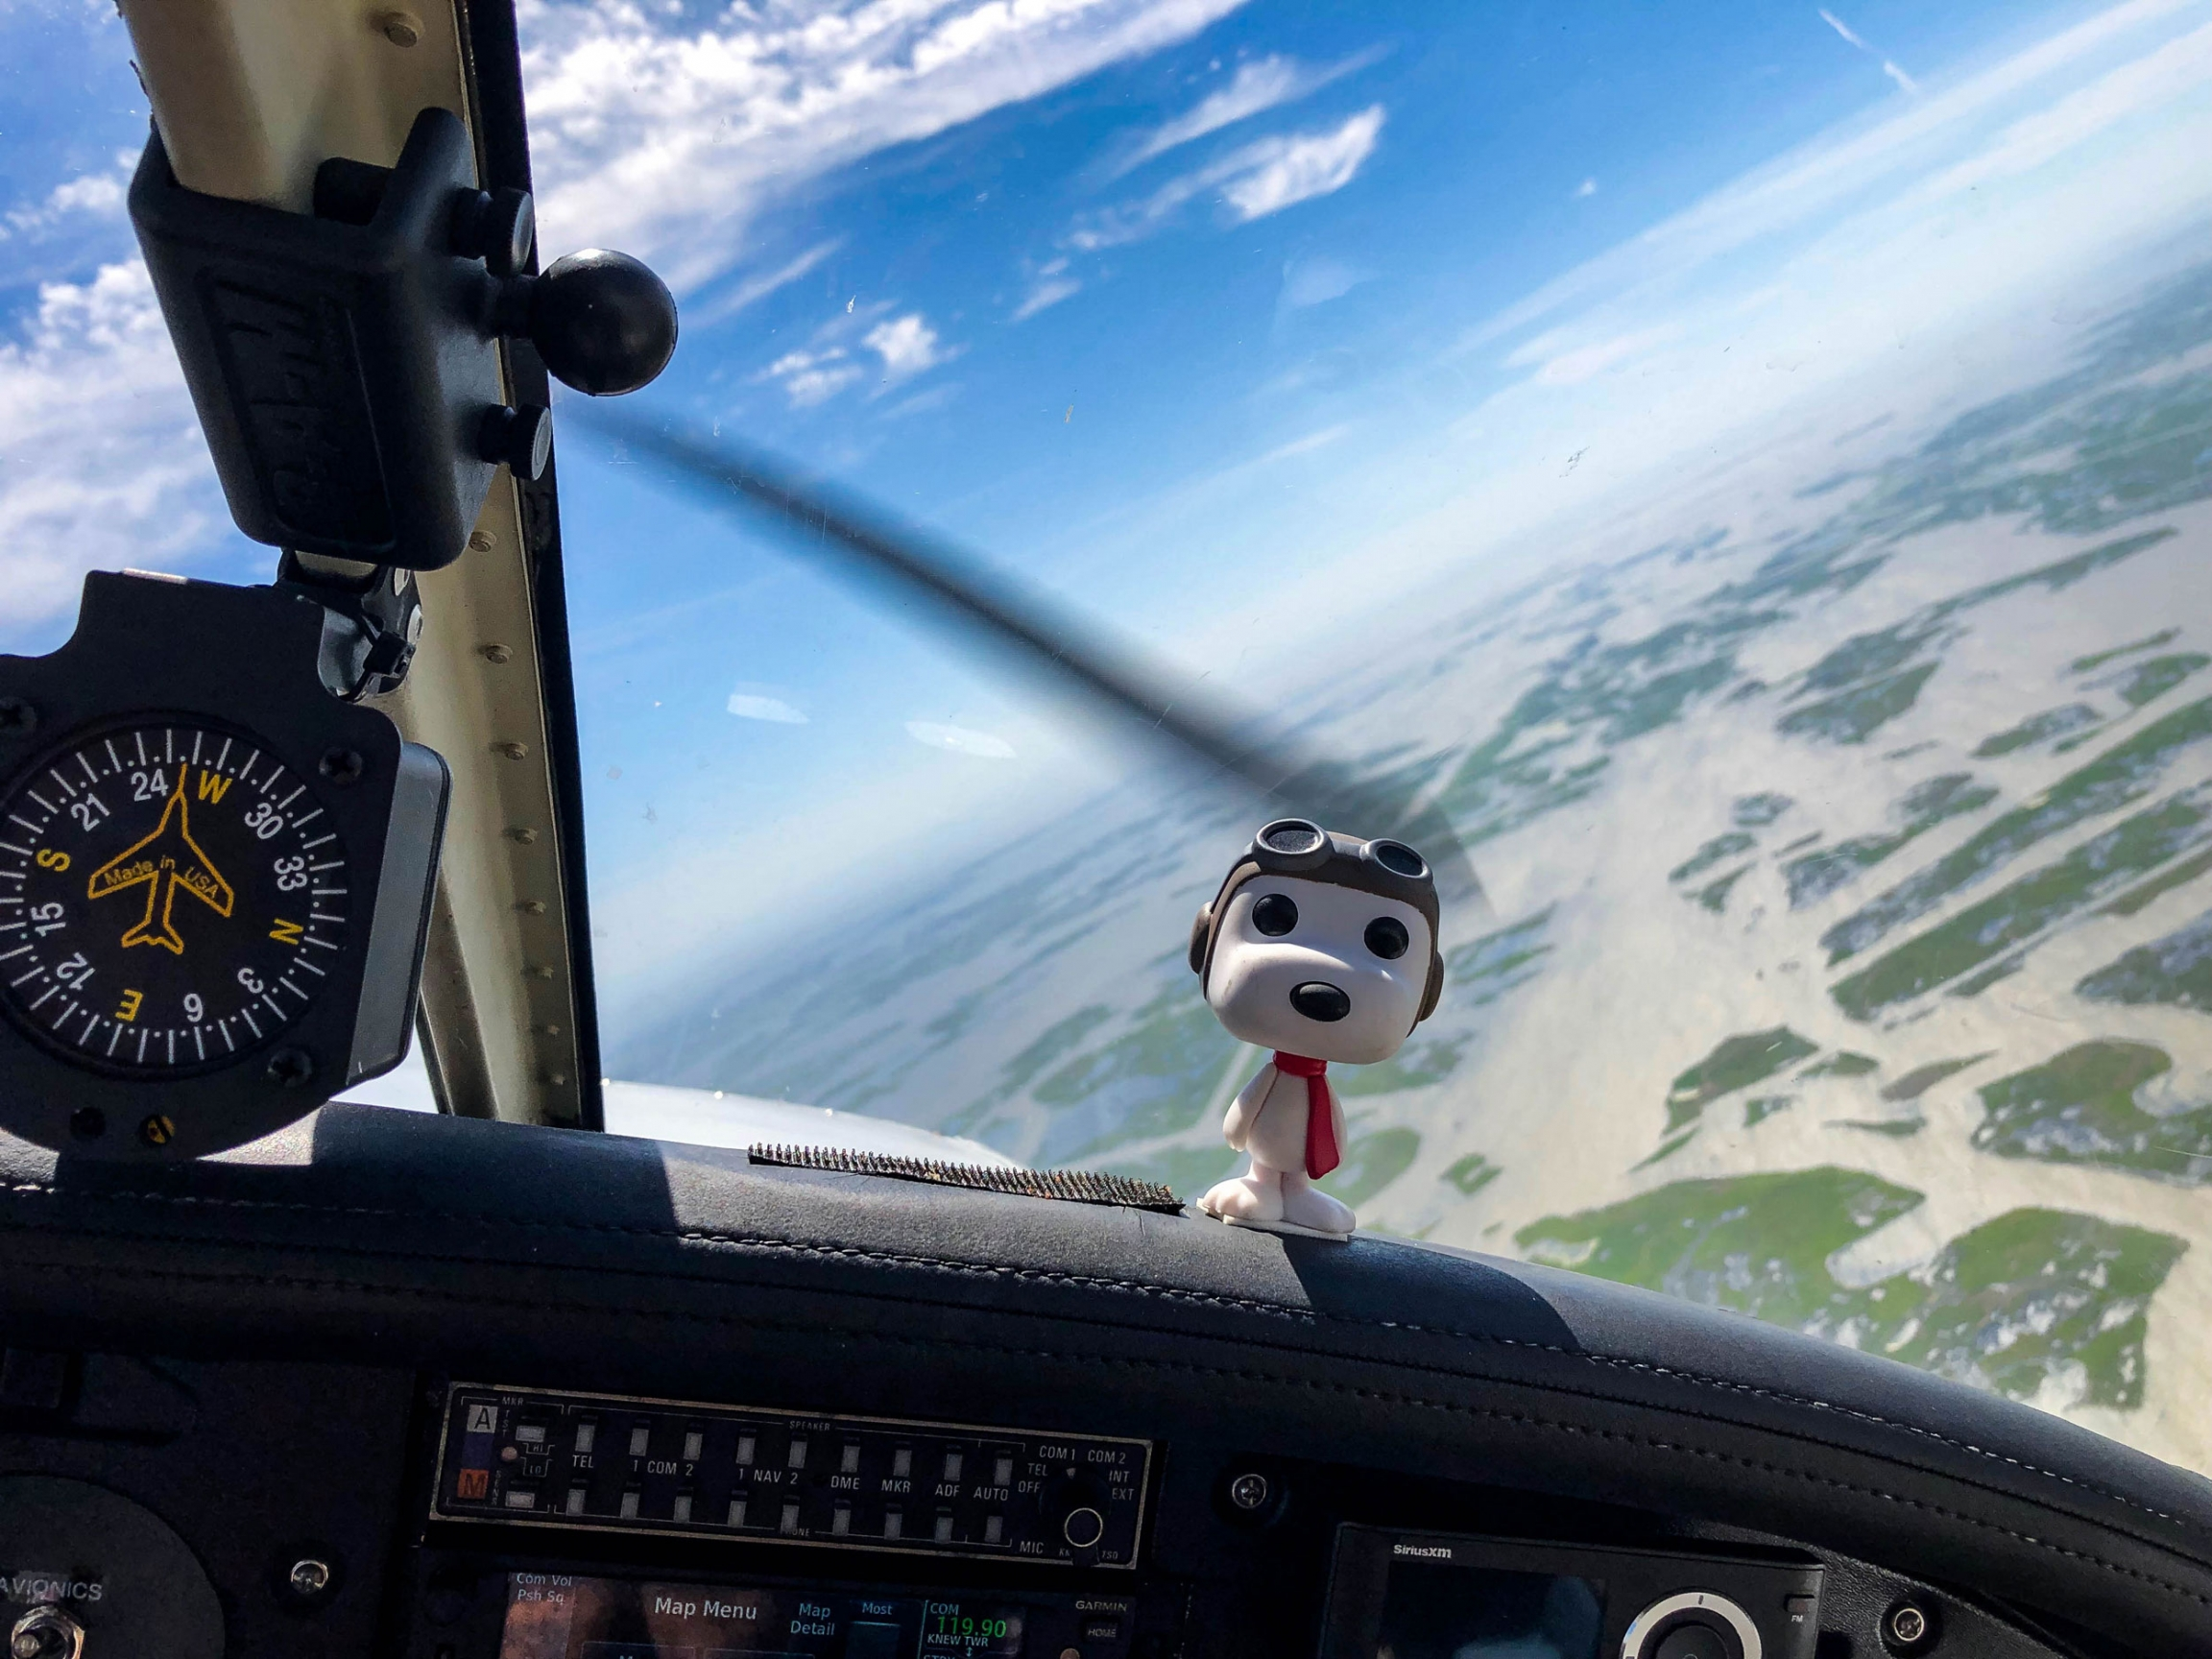 A figurine of Snoopy is shown on the dashboard of four-seat plane with aviator attire.